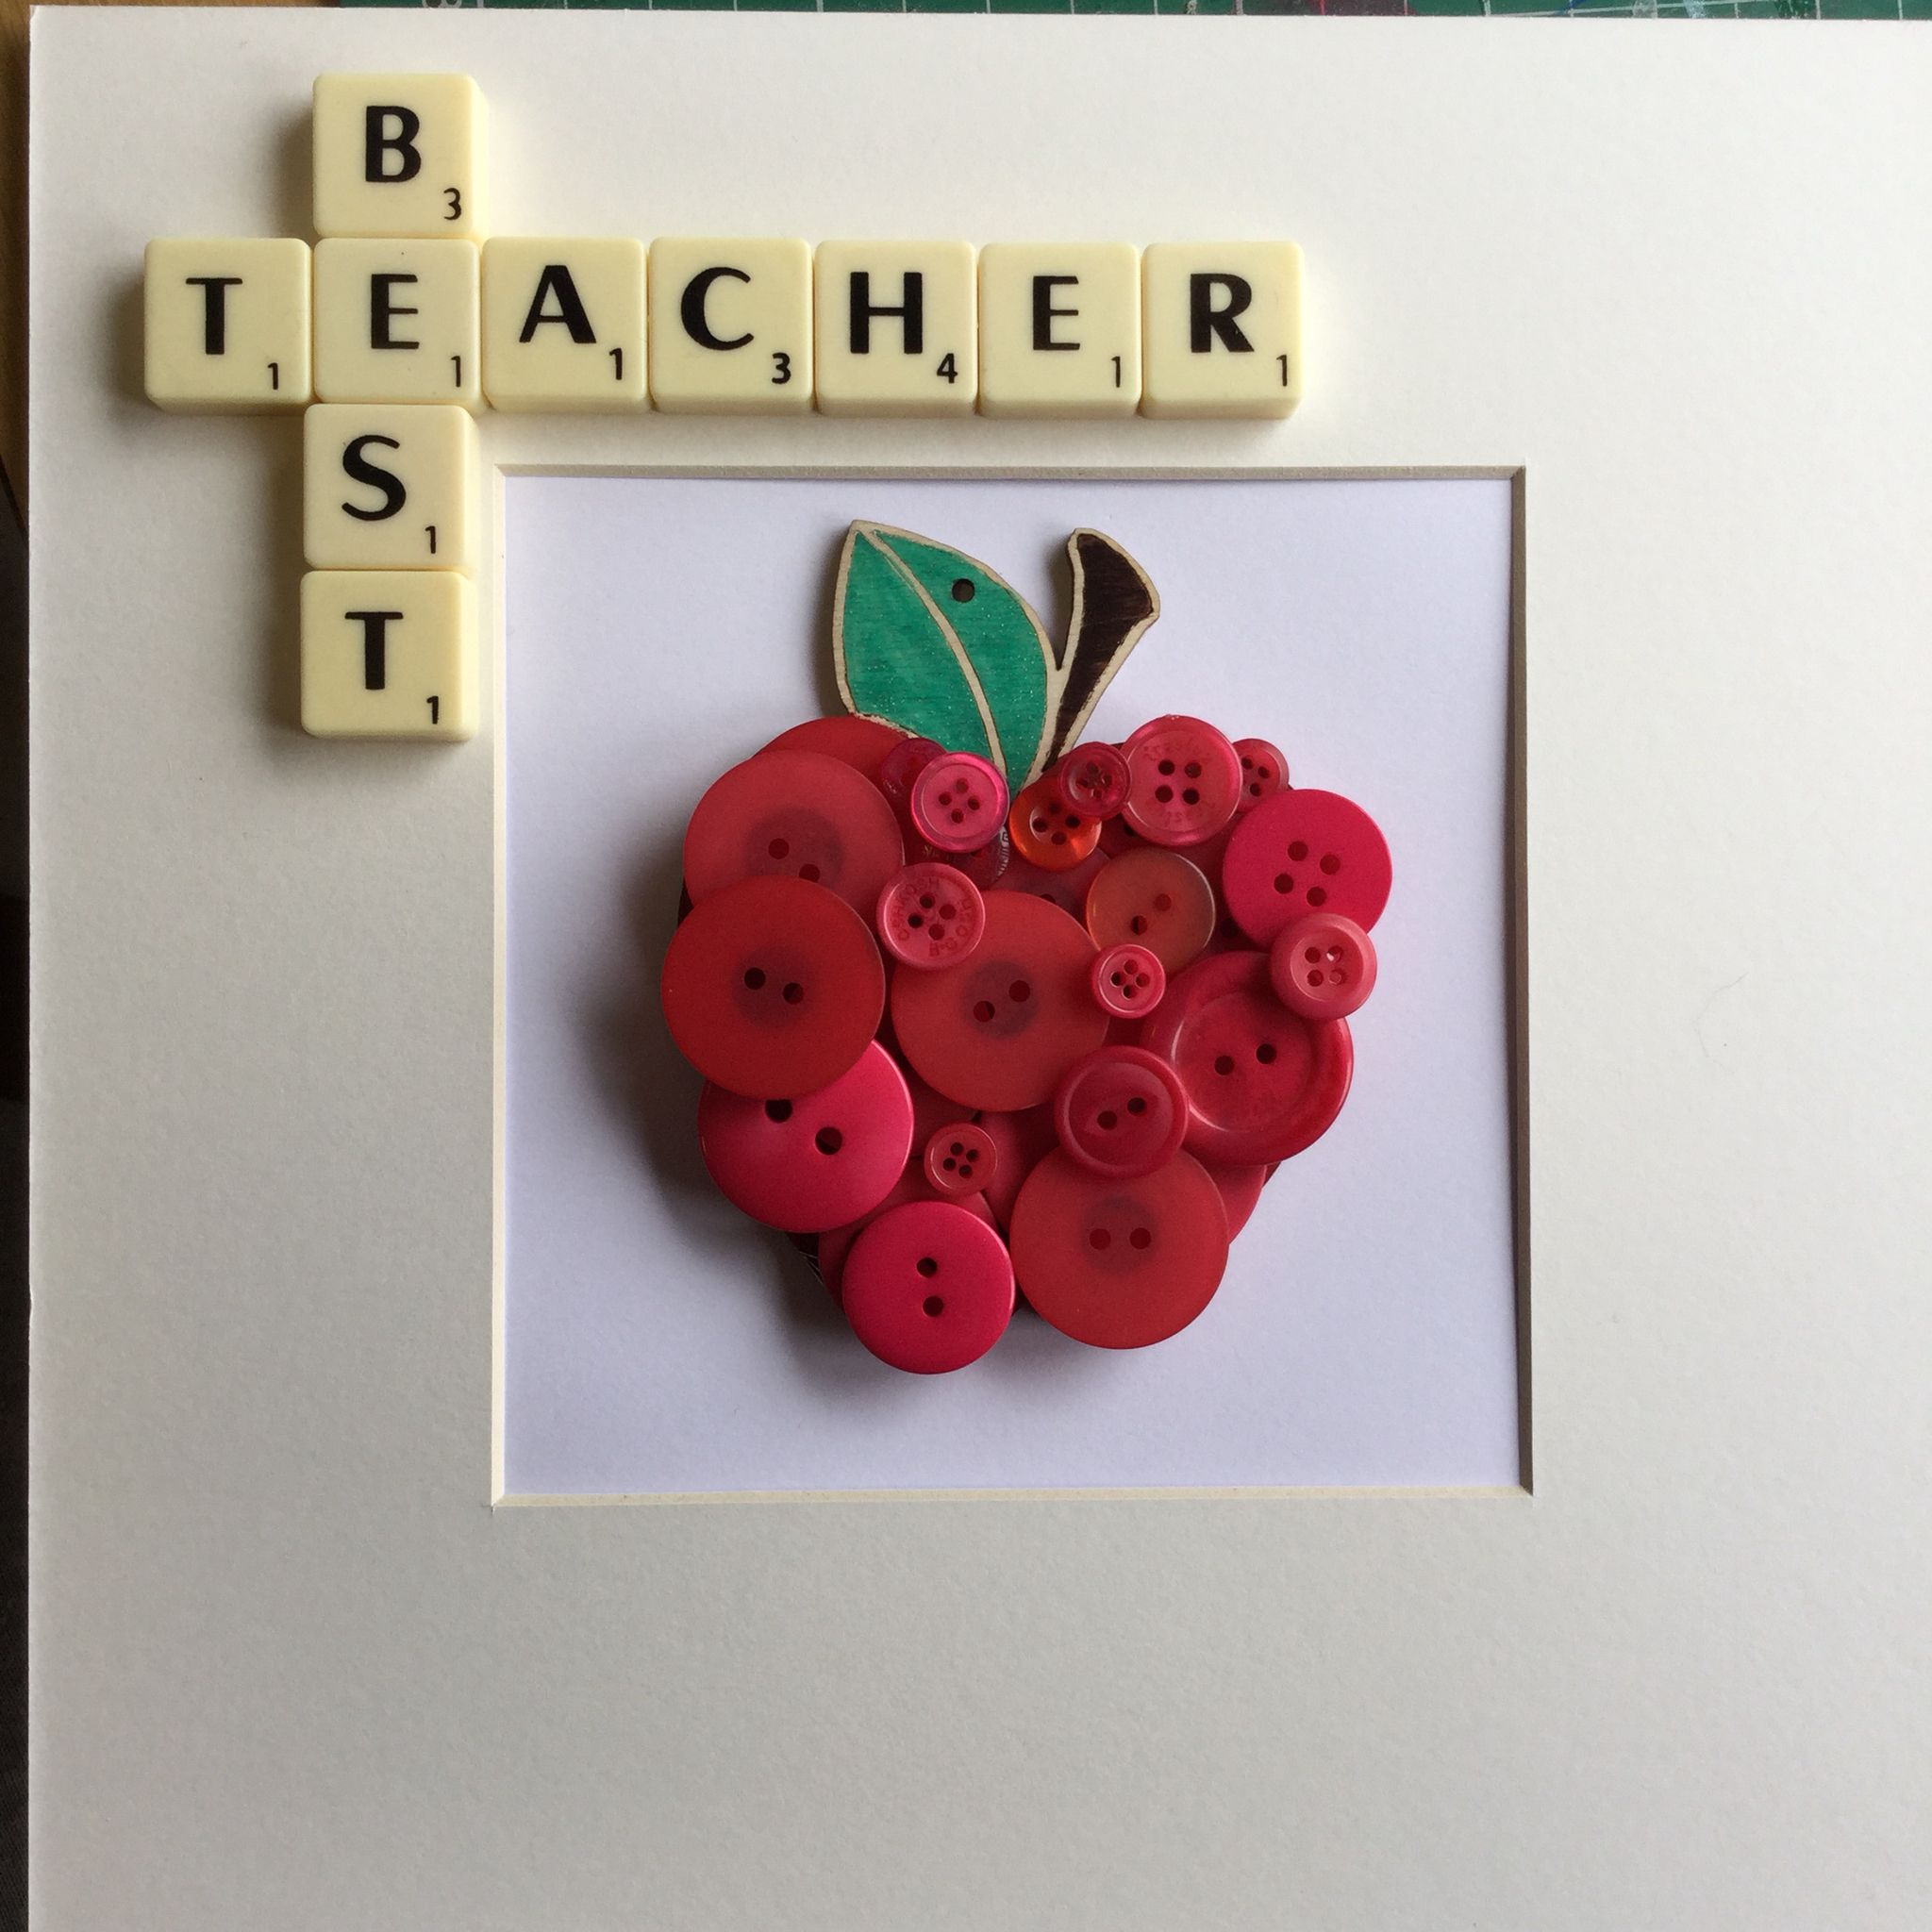 Diy Gift Idea Day Teacher Home Art Decor: Handmade Button Craft Using Scrabble Letters And Hand